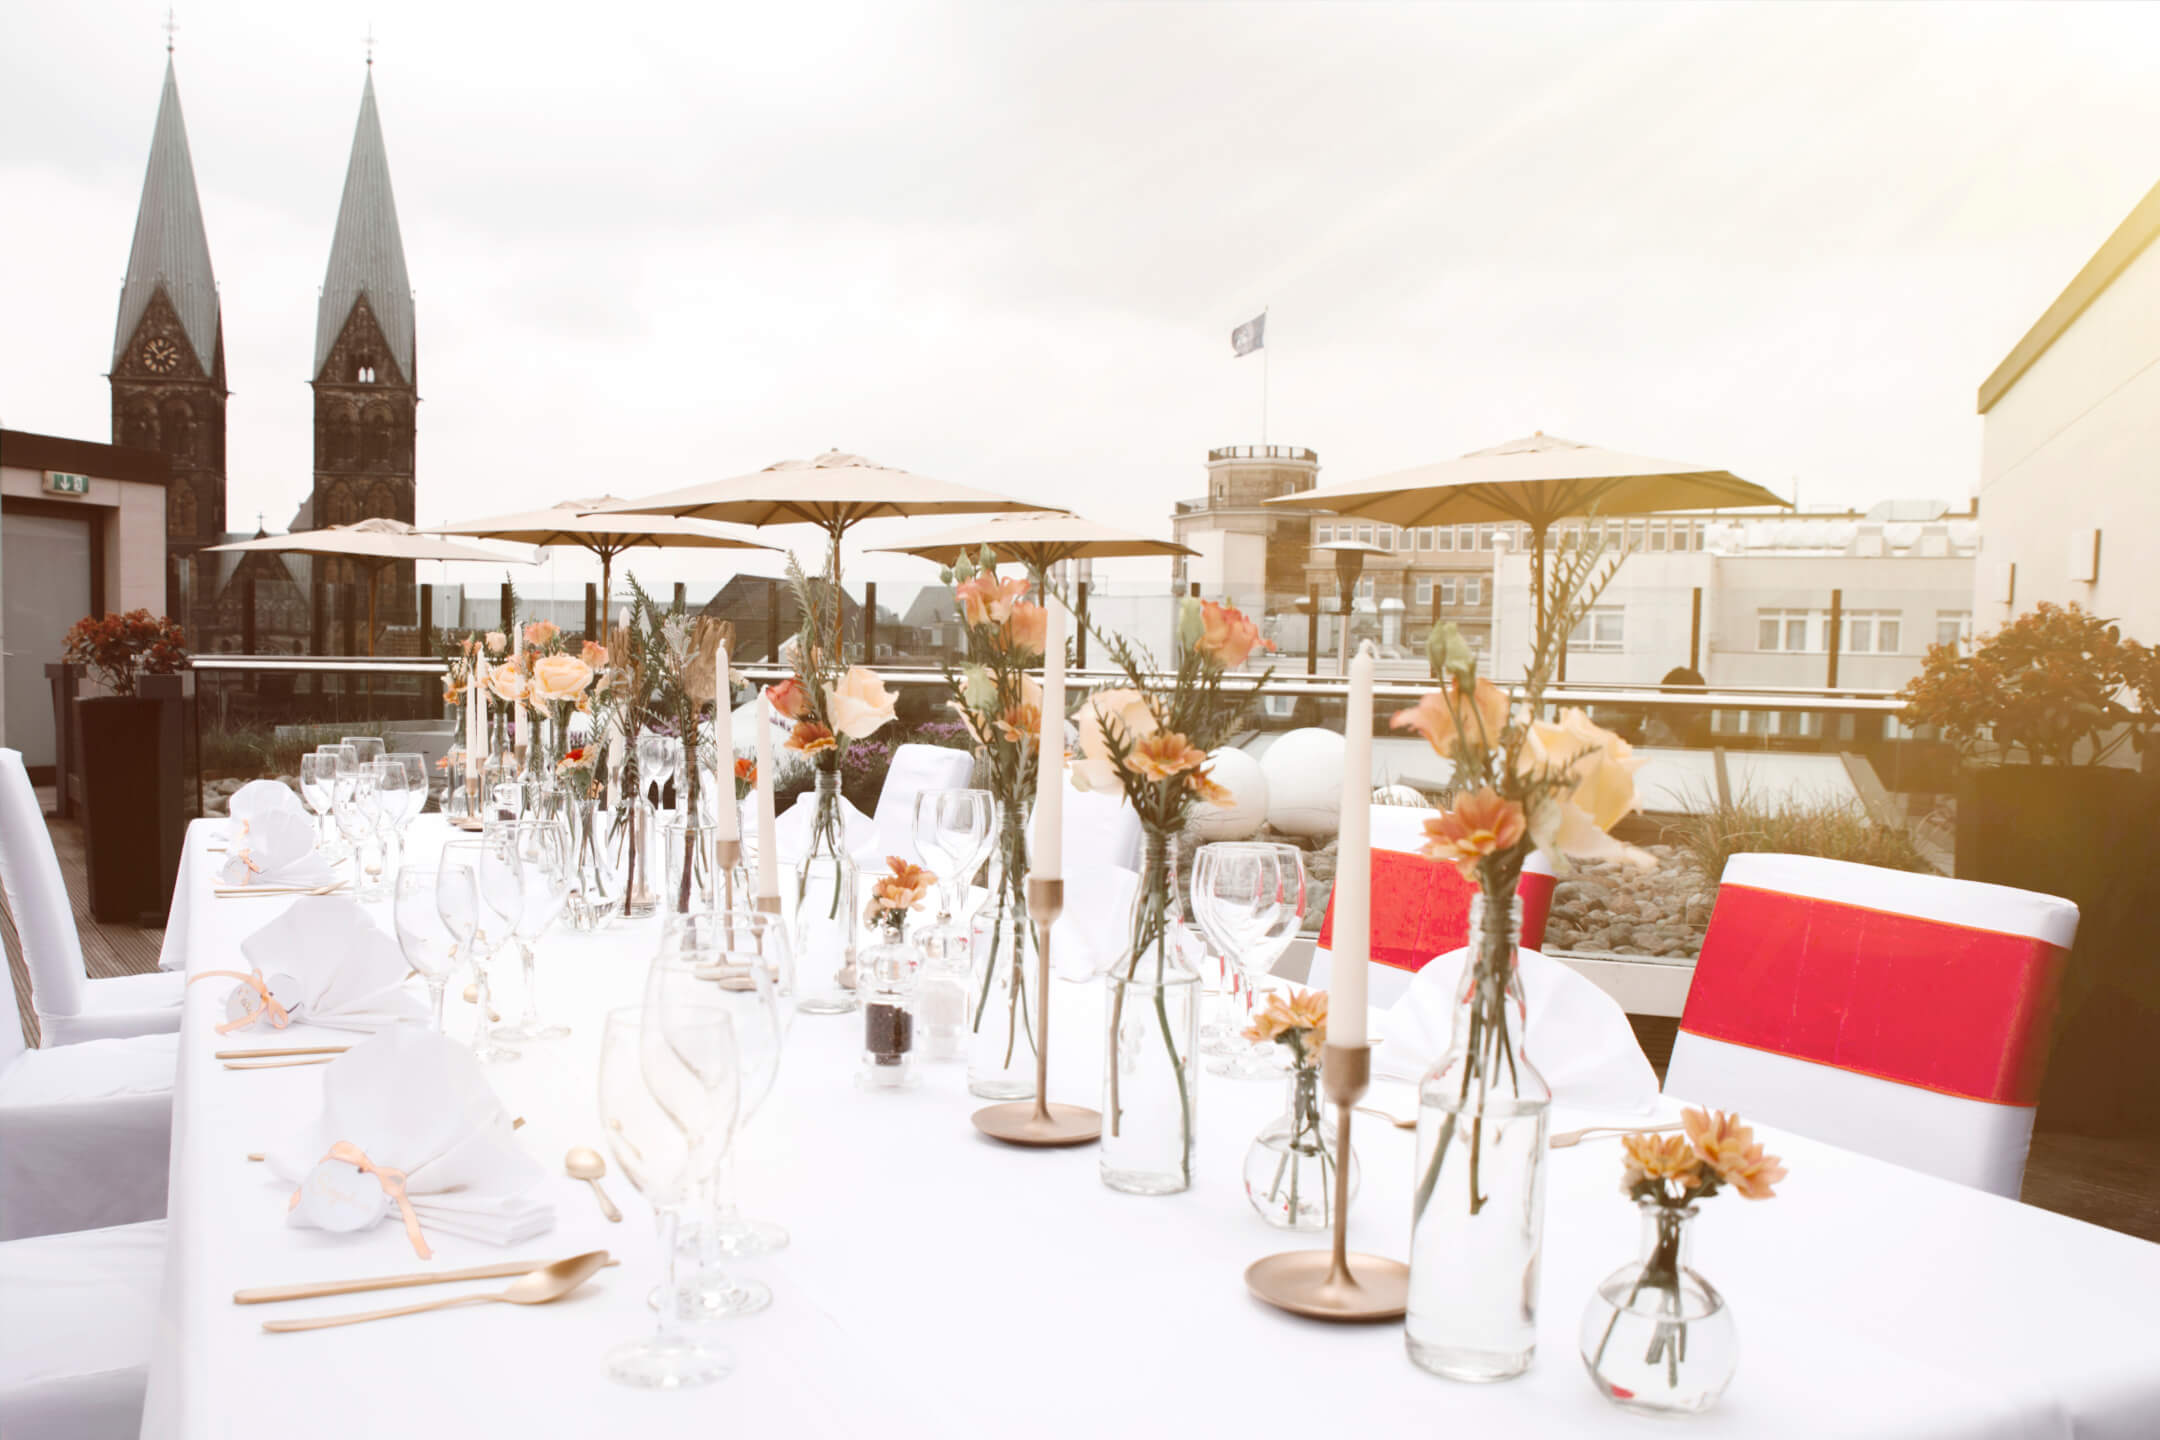 summery weddingdecoration with a view to the bremer cathedral